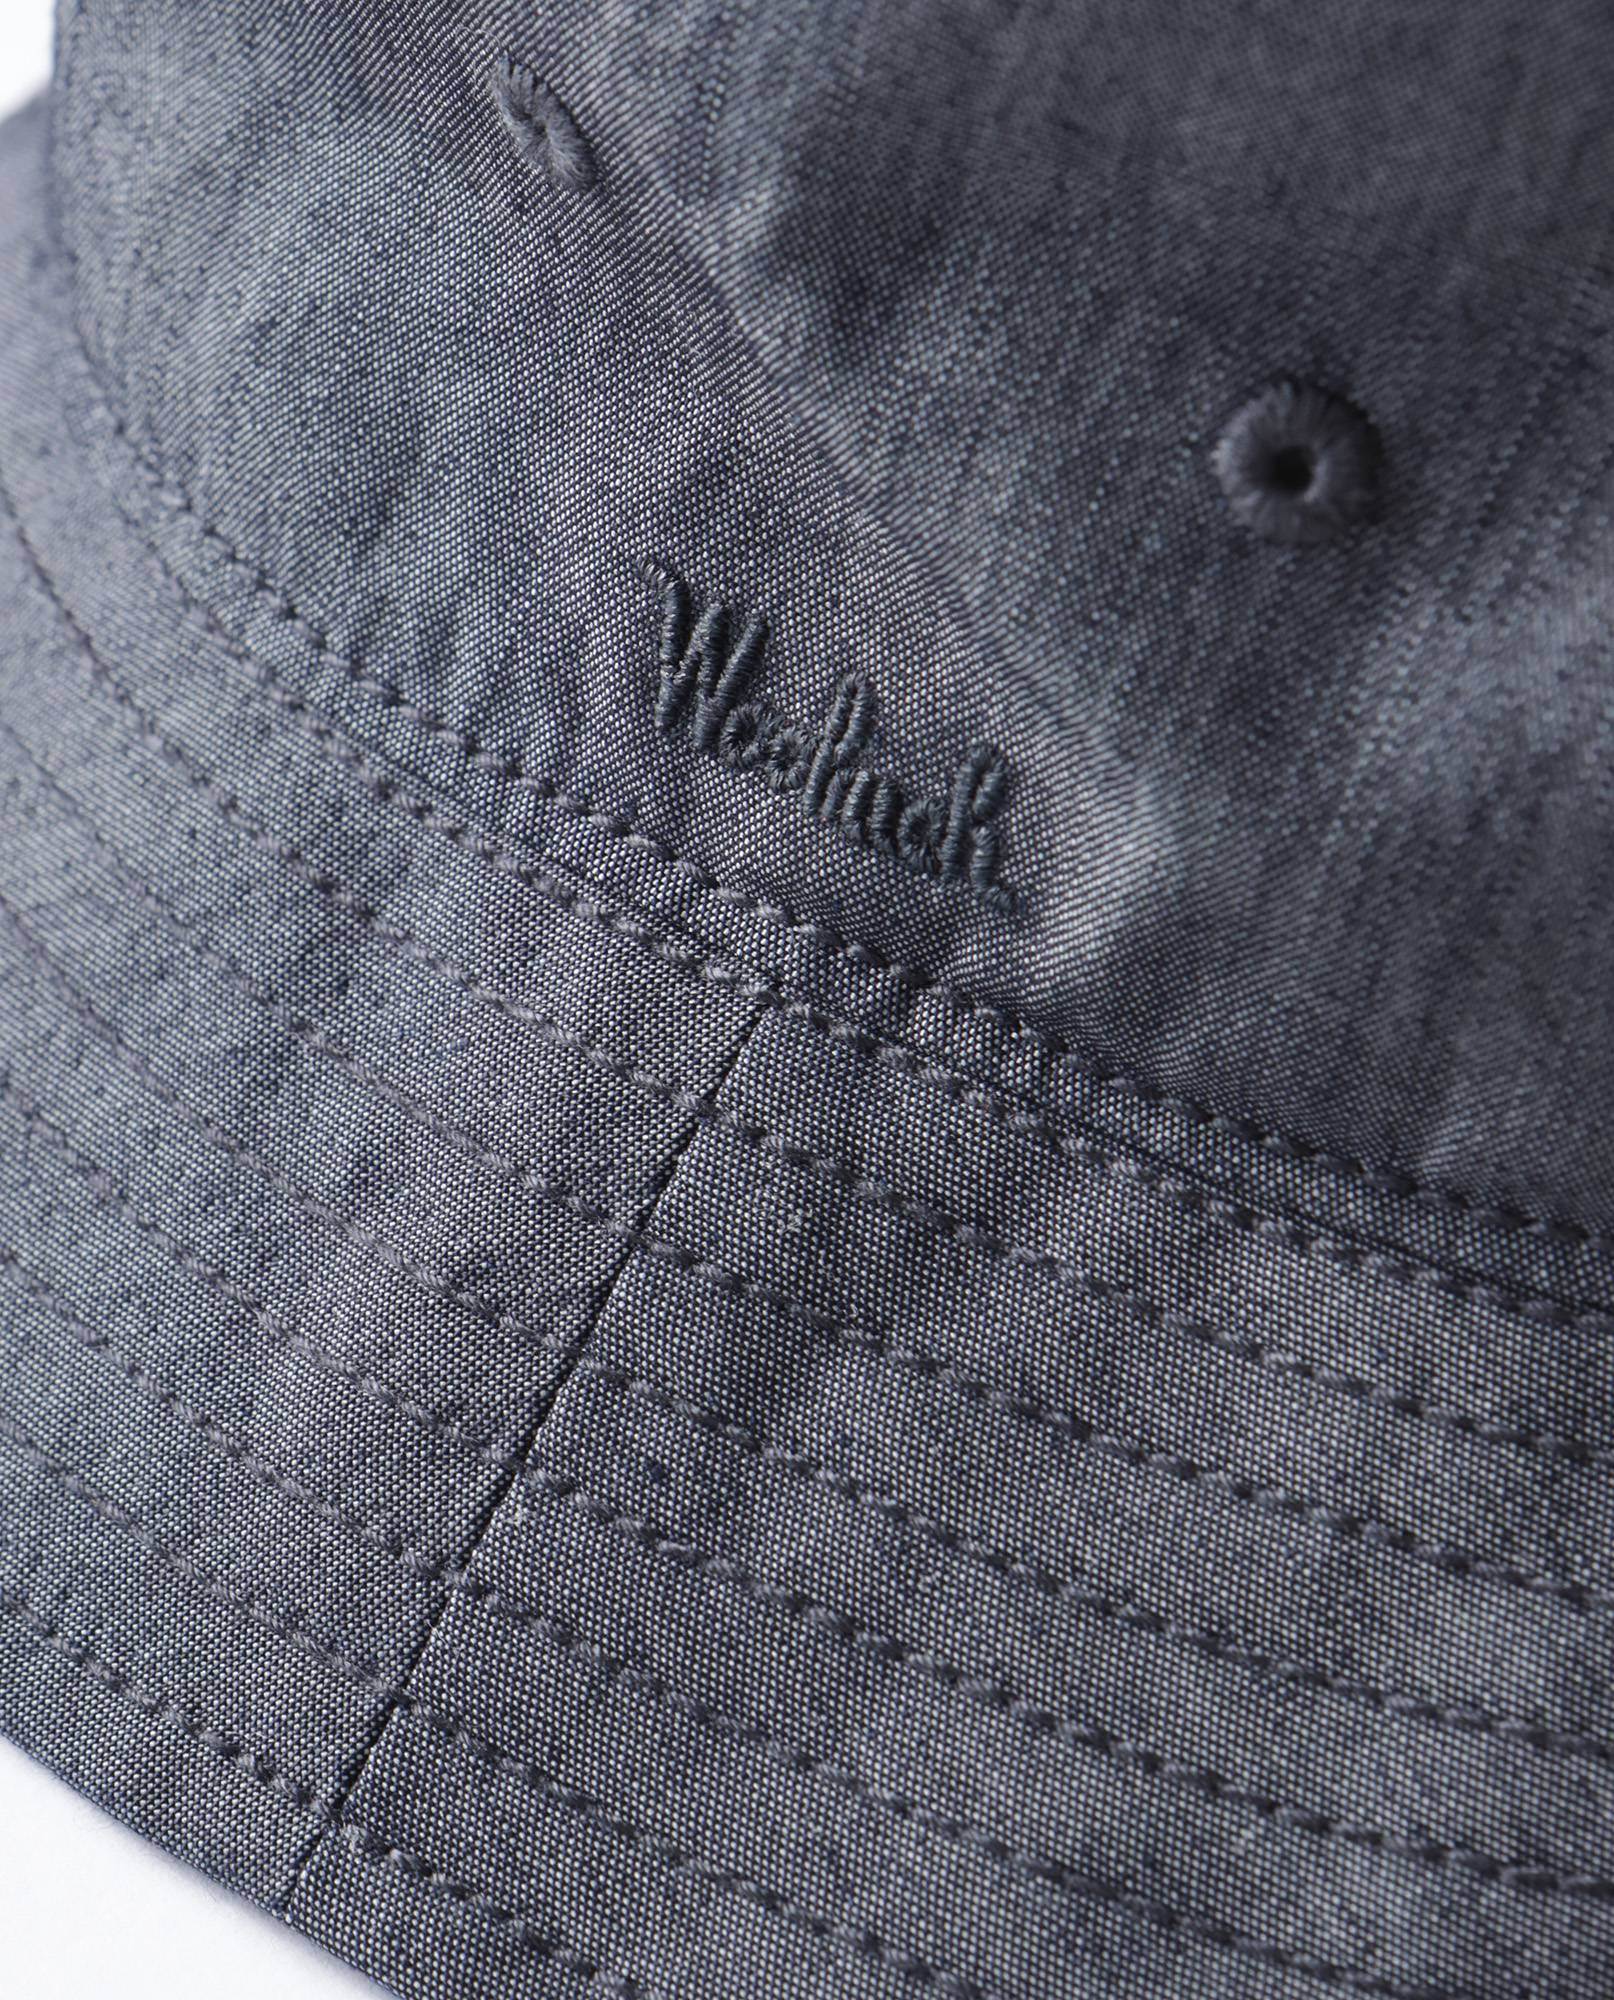 C/NY CANVAS DENIM HAT